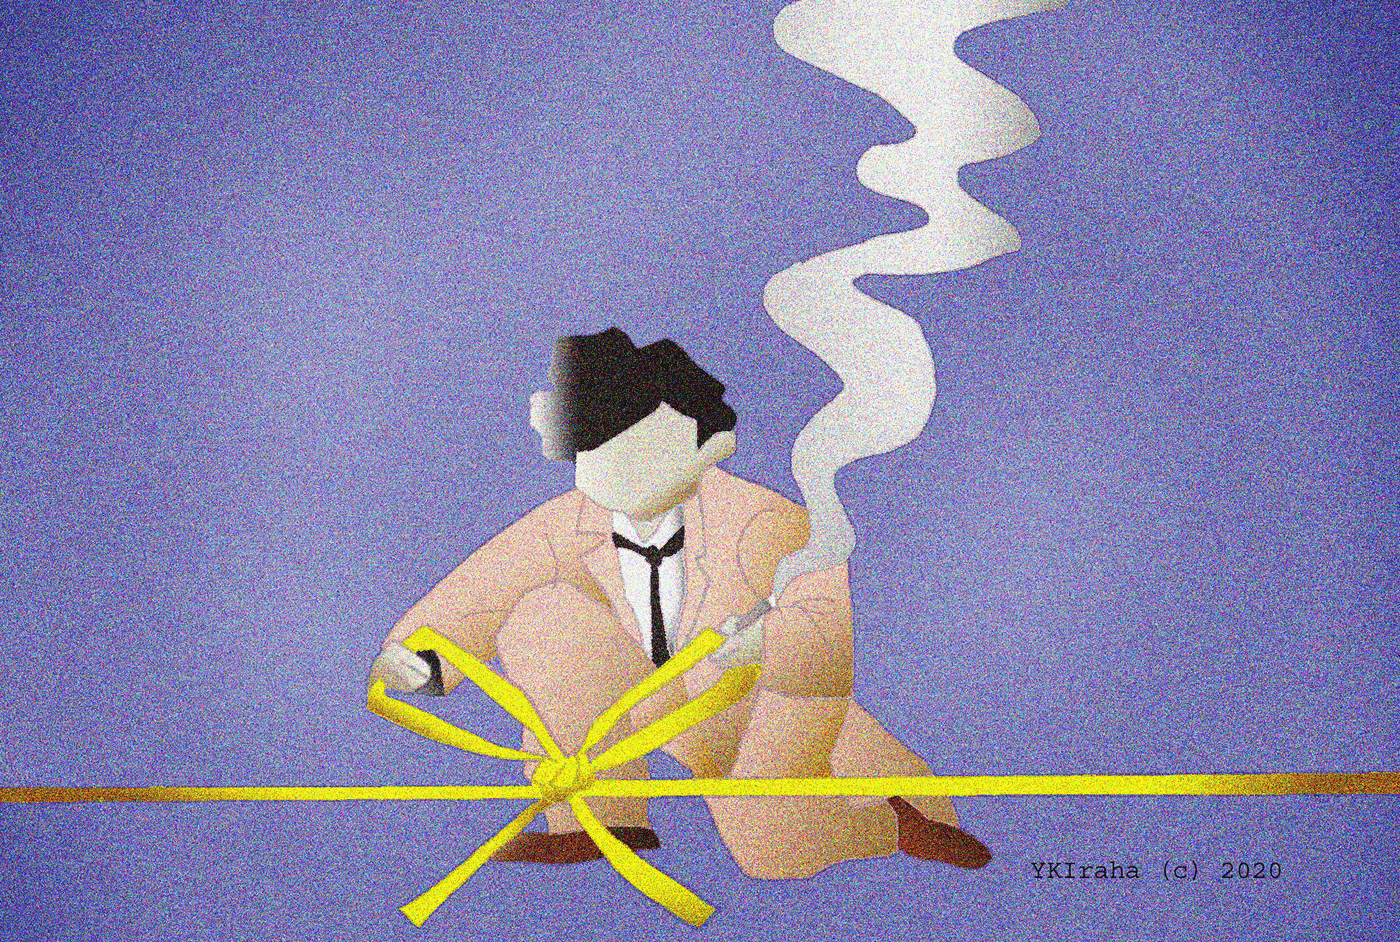 Yukio Kevin Iraha's abstract illustration on character tying up loose ends